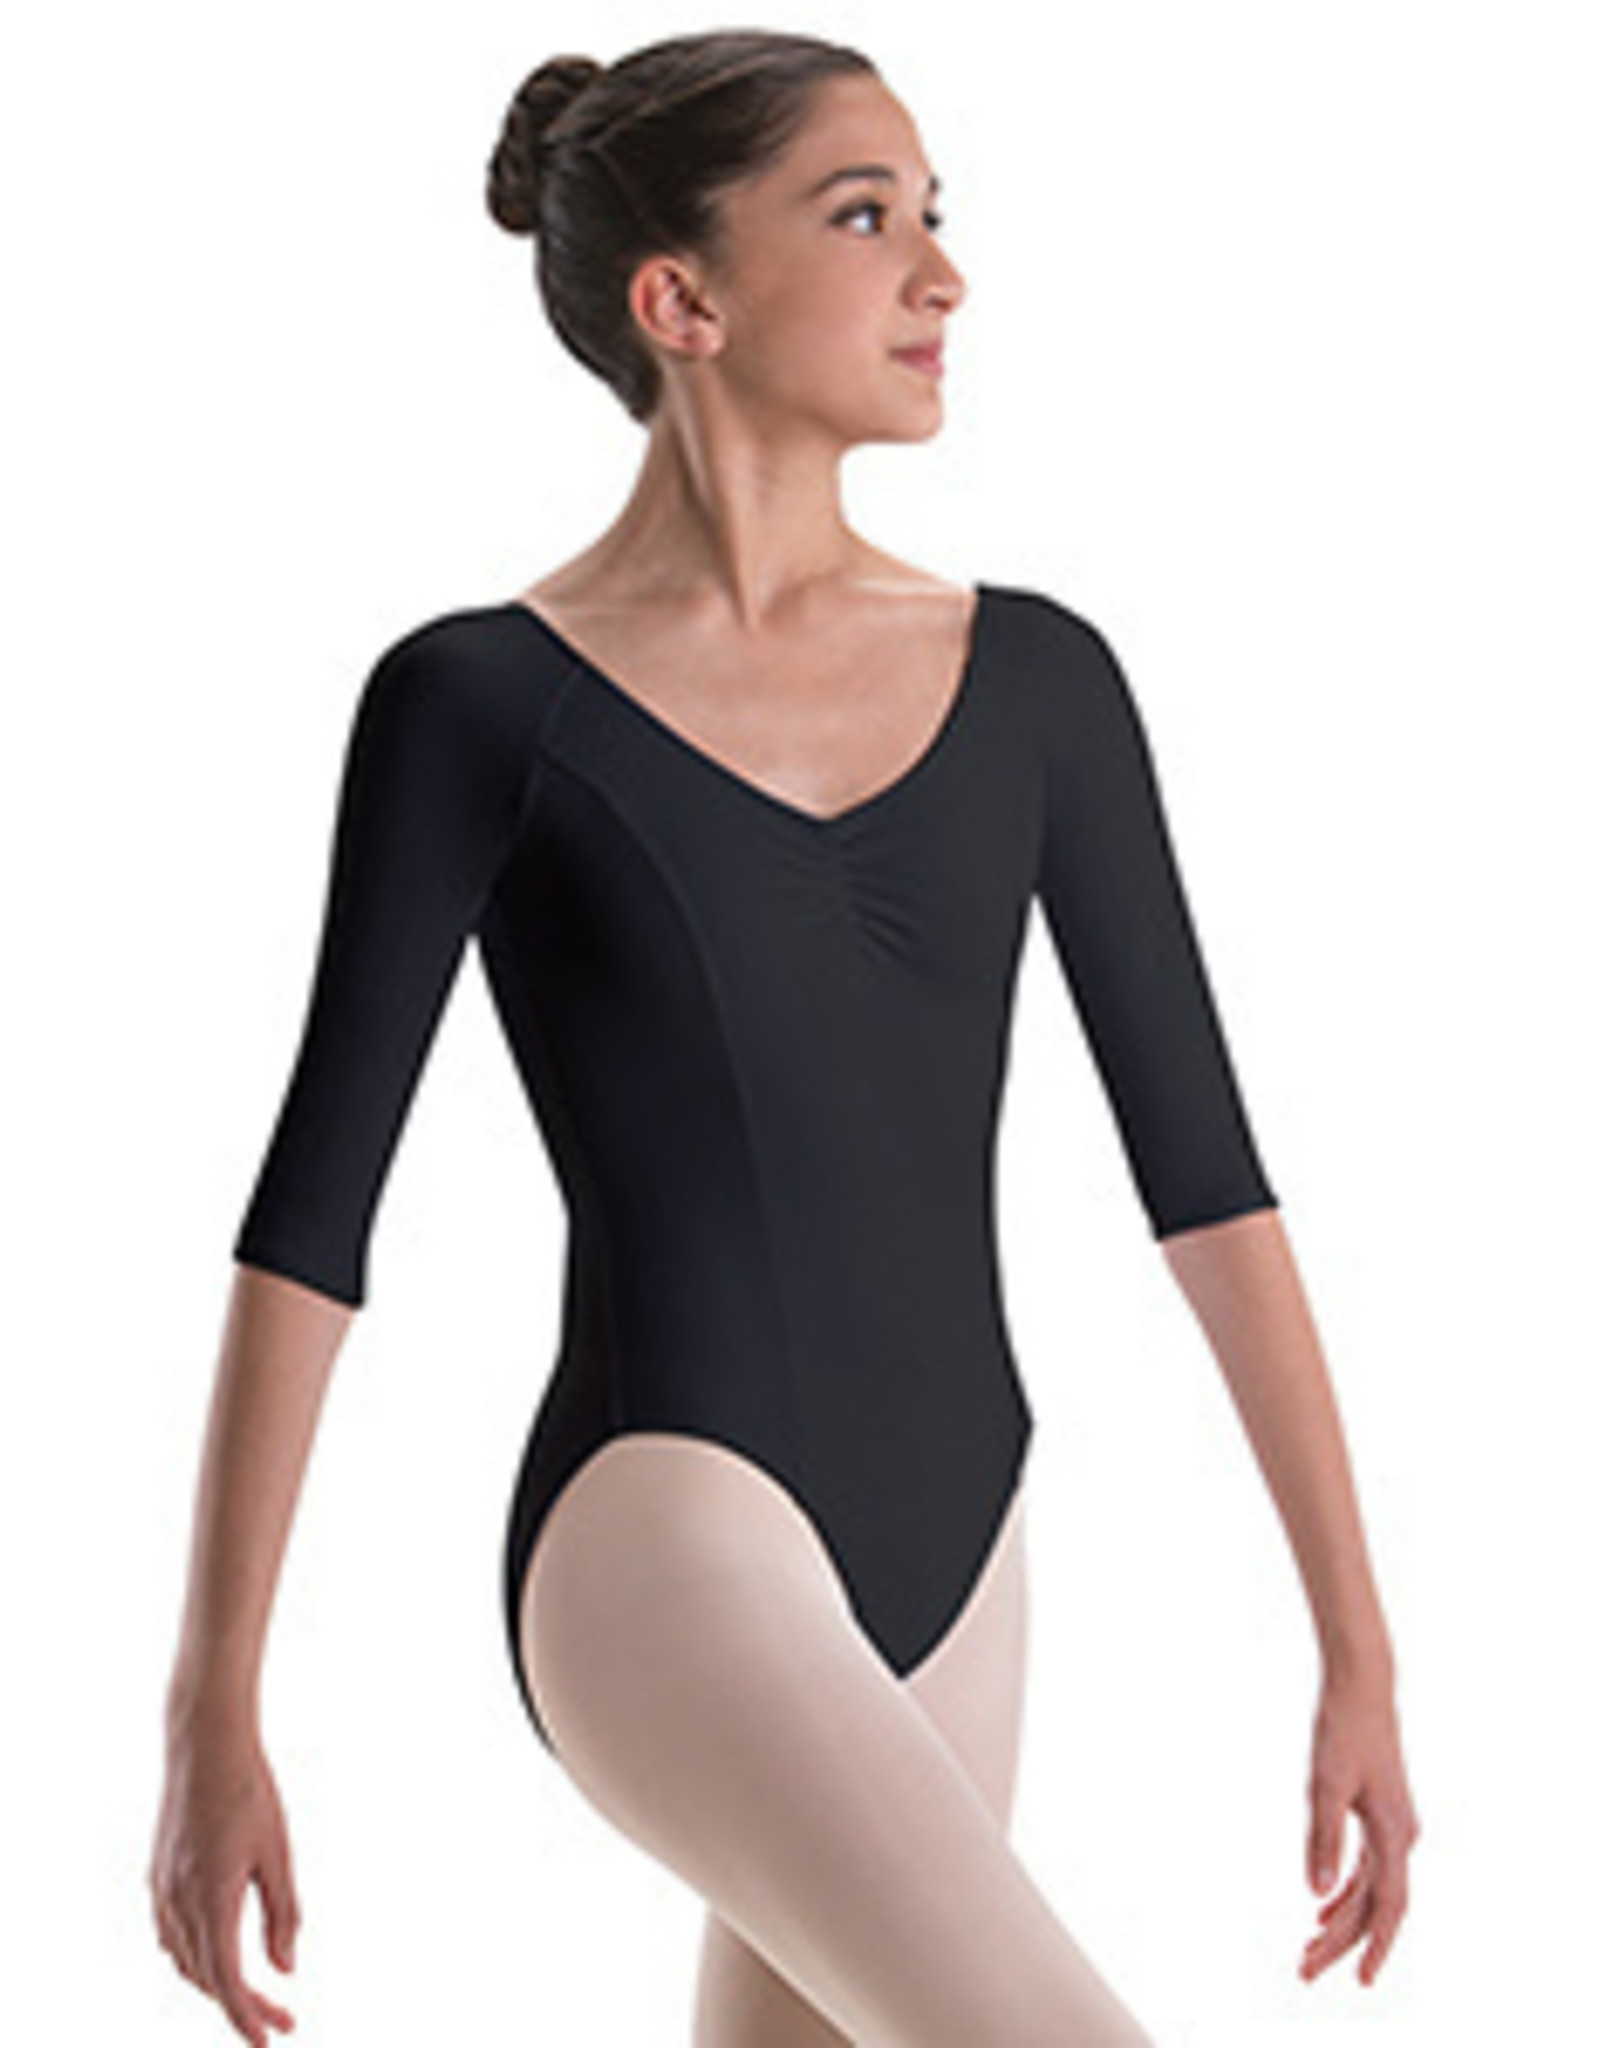 MOTIONWEAR MAILLOT MANCHES 3/4 (2150)